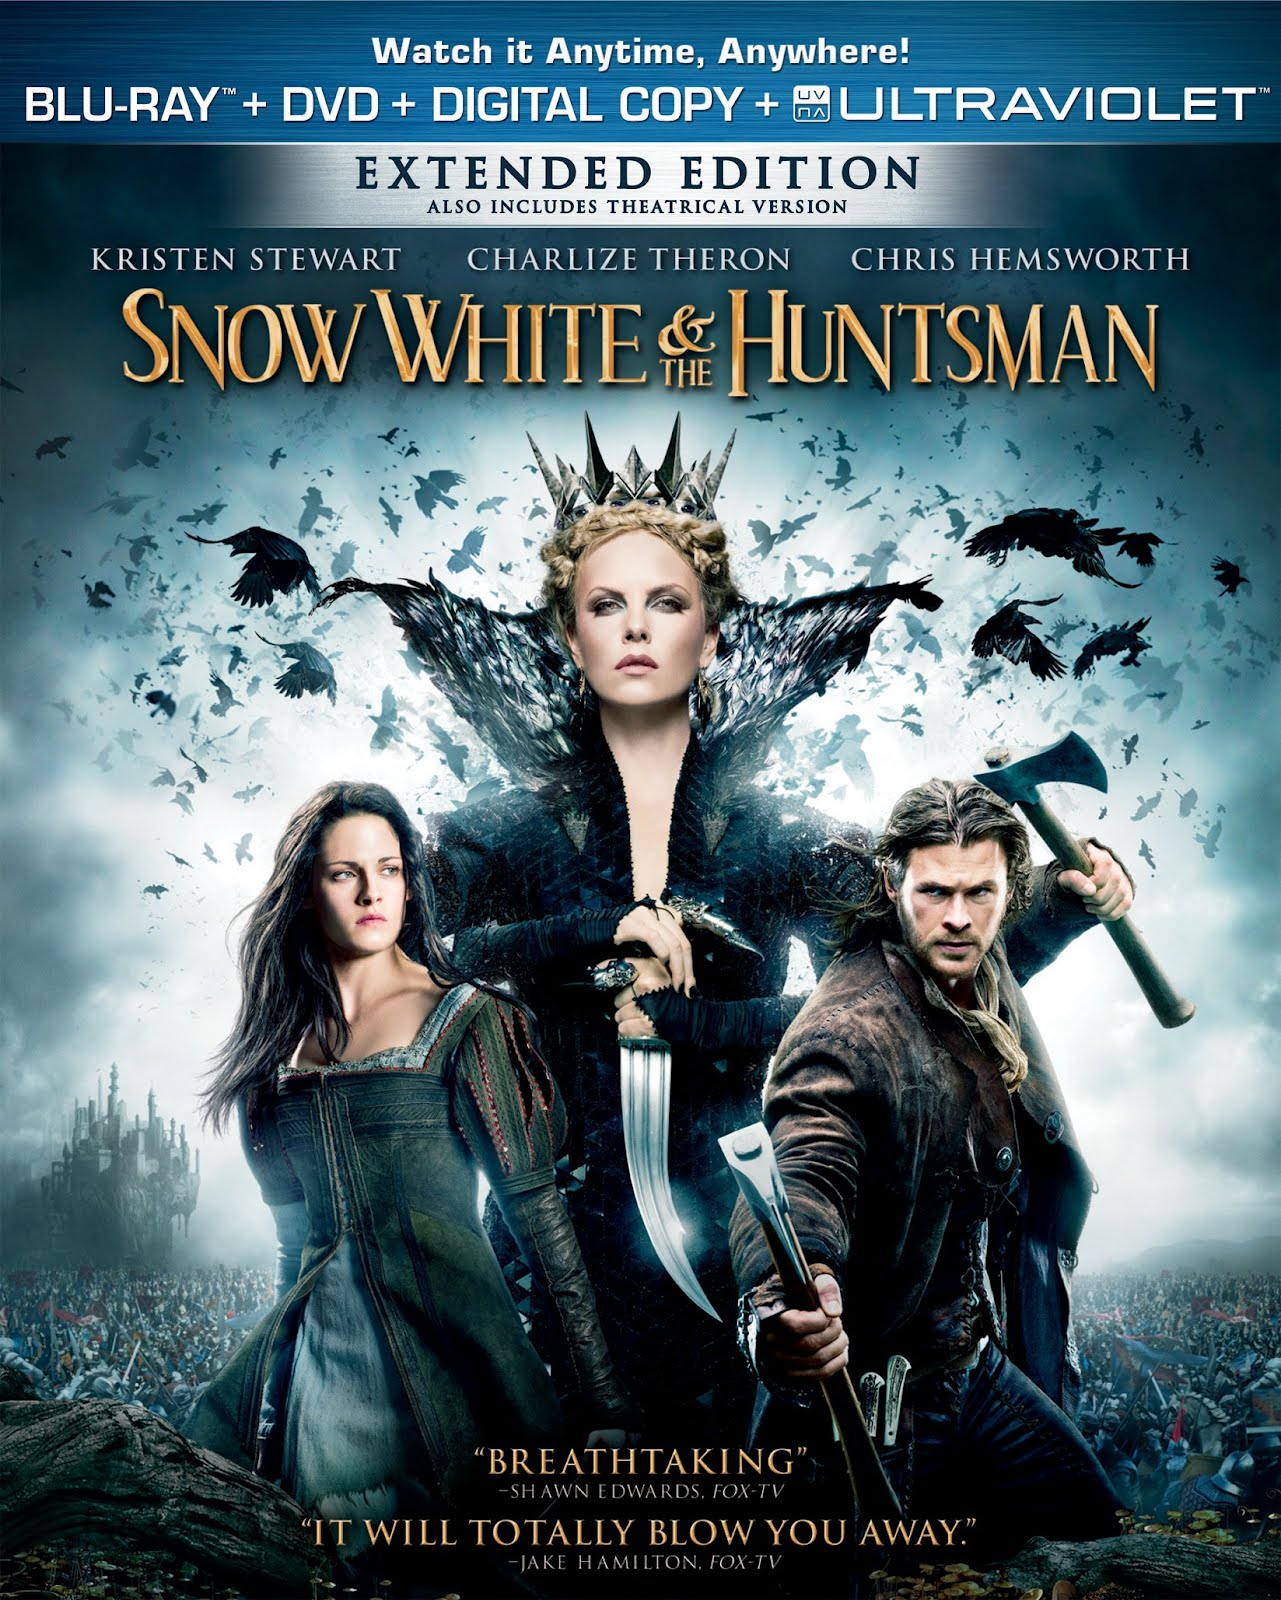 http://4.bp.blogspot.com/-NcgB86SofoY/UEfN9JEa1LI/AAAAAAAACjQ/14mRzjvSJRQ/s1600/snow-white-and-the-huntsman-blu-ray-cover-38.jpg